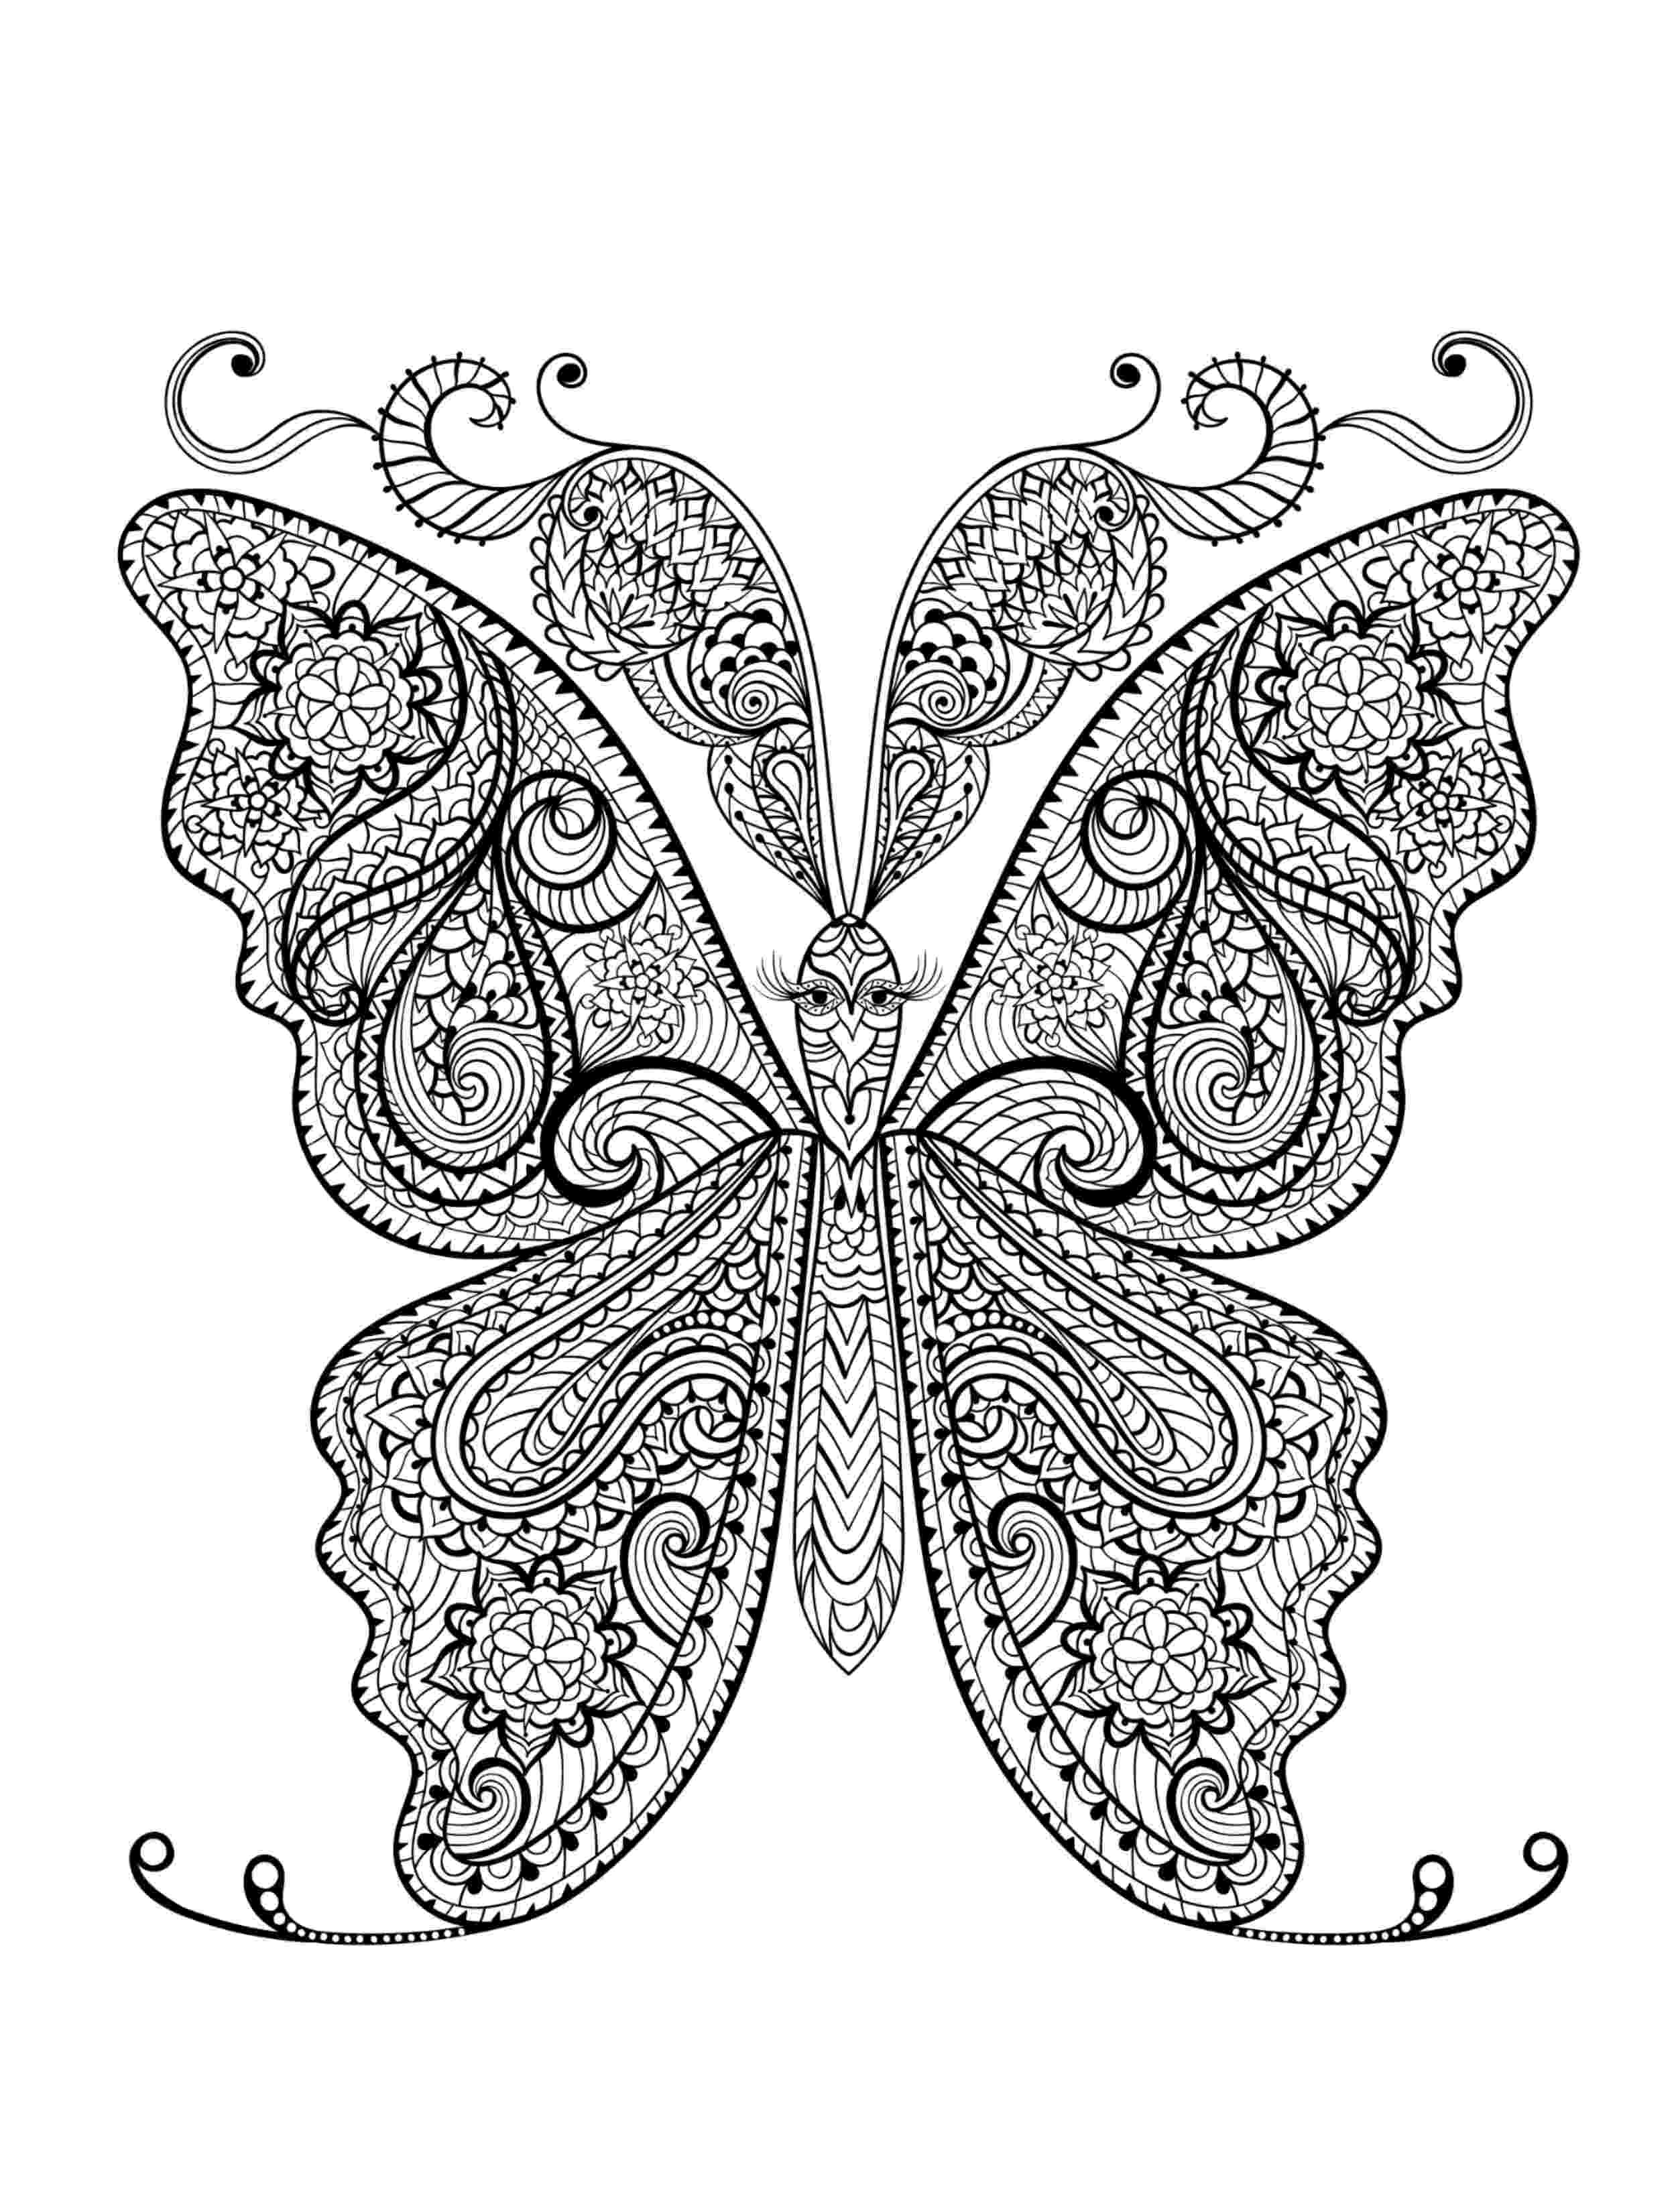 adult coloring pages animals adult coloring pages animals best coloring pages for kids animals pages coloring adult